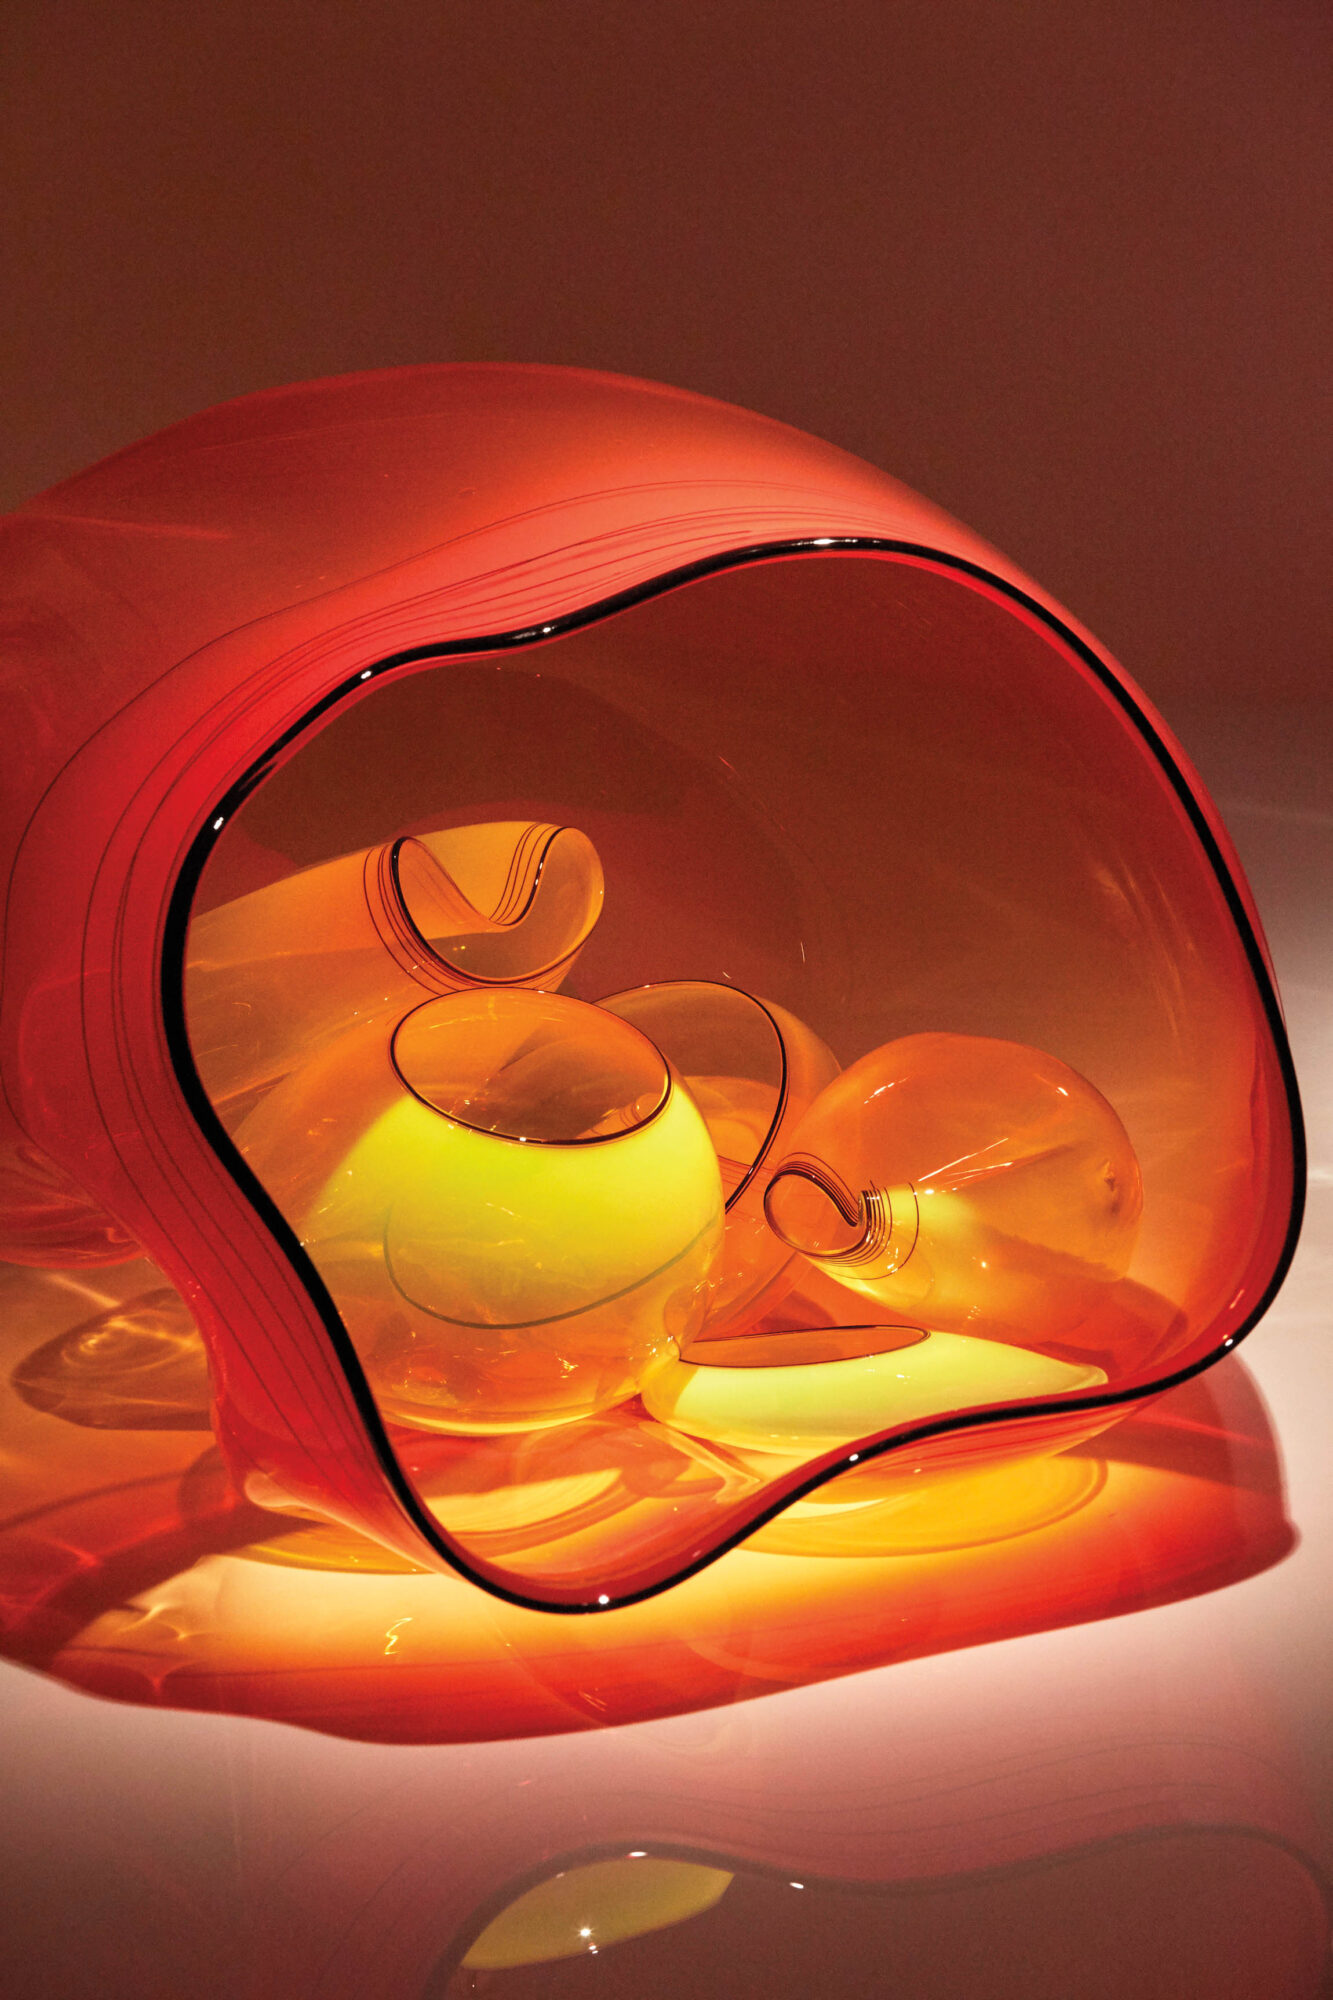 Orange glass art by Dale Chihuly